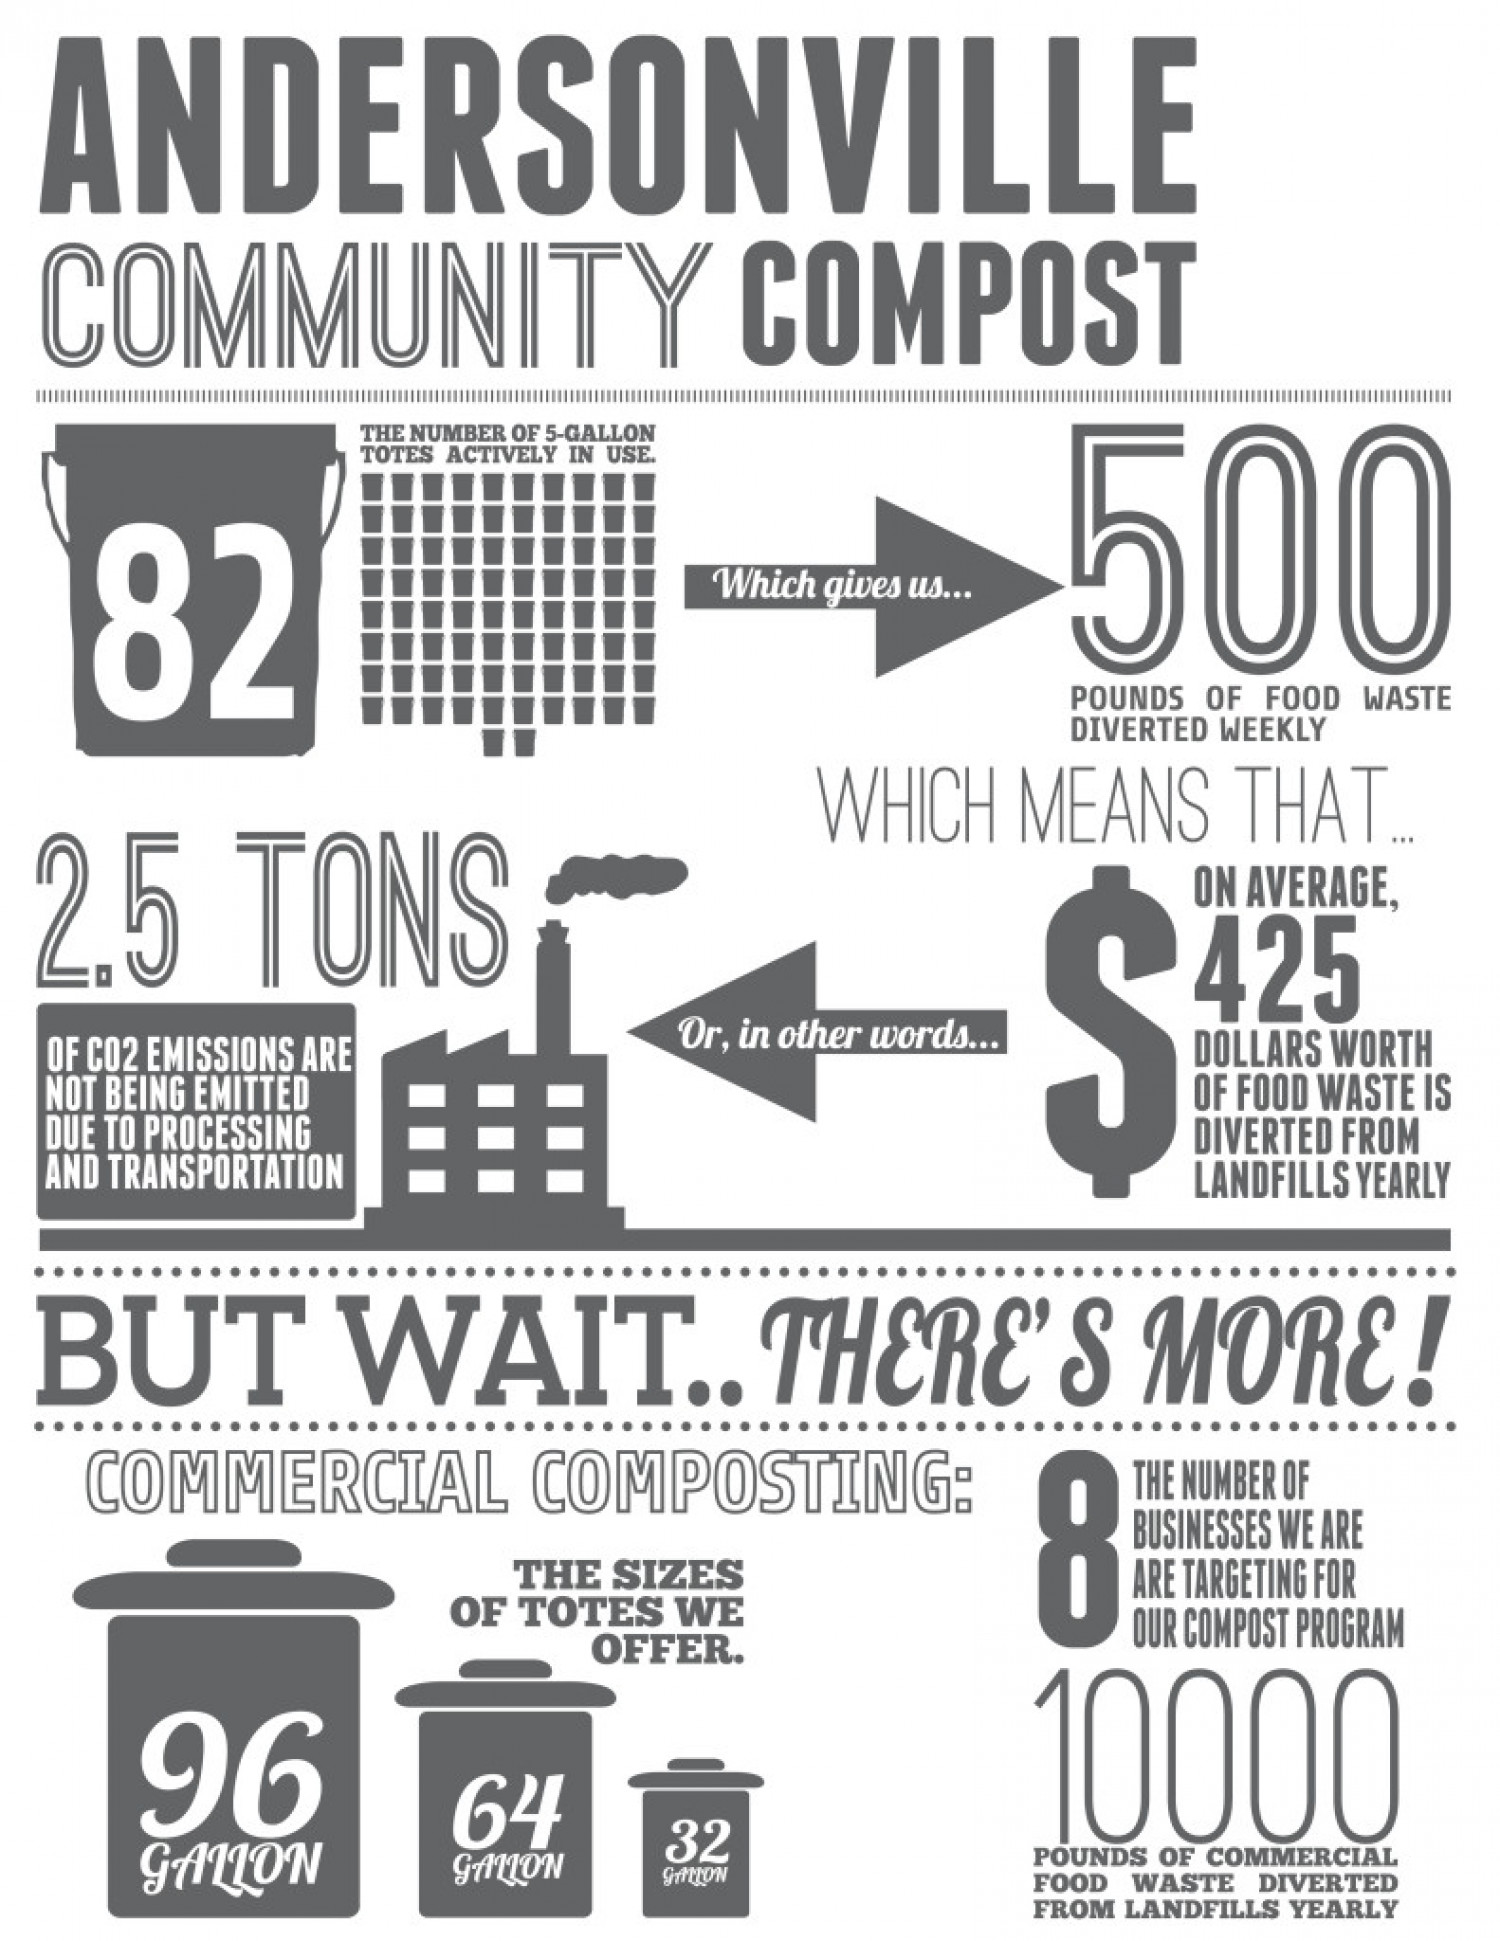 Andersonville Community Compost Infographic